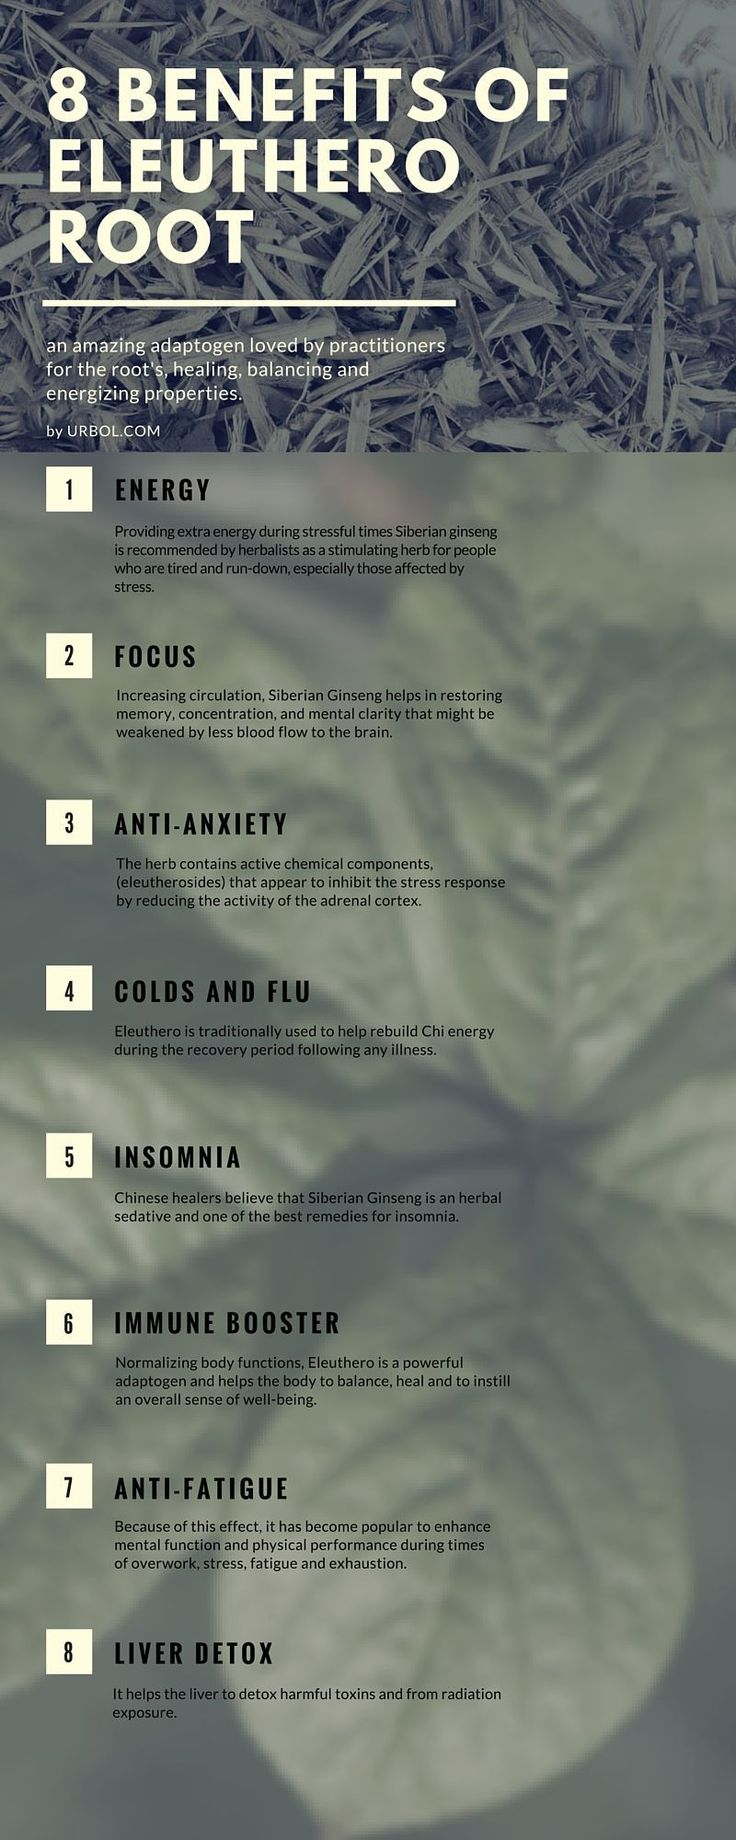 Eleuthero Root Infographic Energy Focus Anti-Anxiety Anti-Fatigue Chronic Fatigue Syndrome Common Colds Immune Booster Liver Detox Cancer Antiviral High Blood Pressure Insomnia Bronchitis #LiverDetoxCancer #insomniainfographic